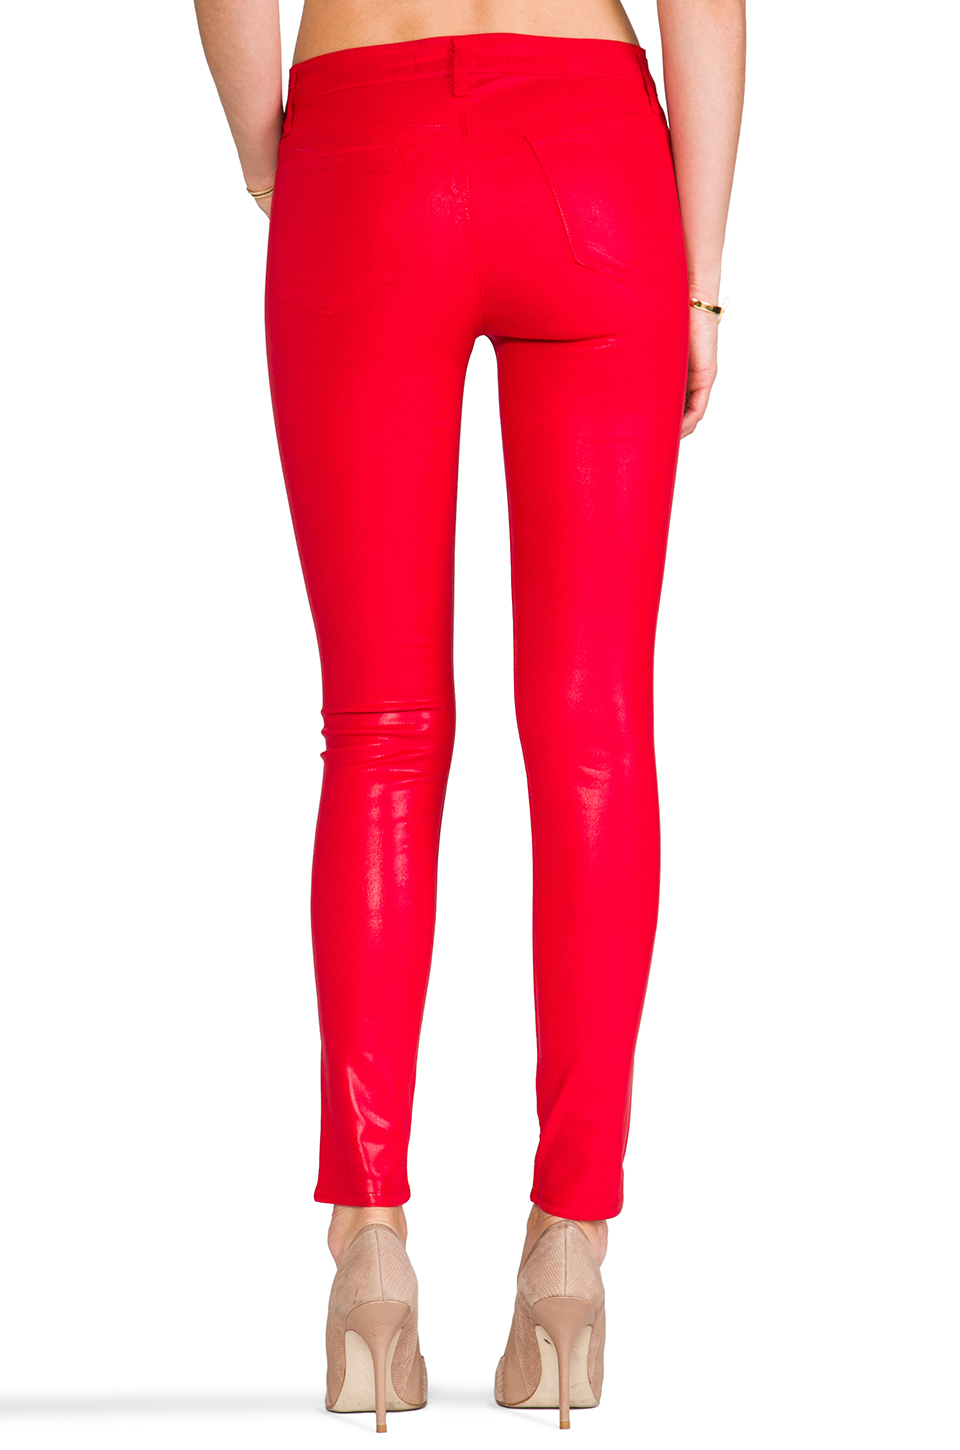 J Brand Midrise Legging in Coated Adra Red | REVOLVE